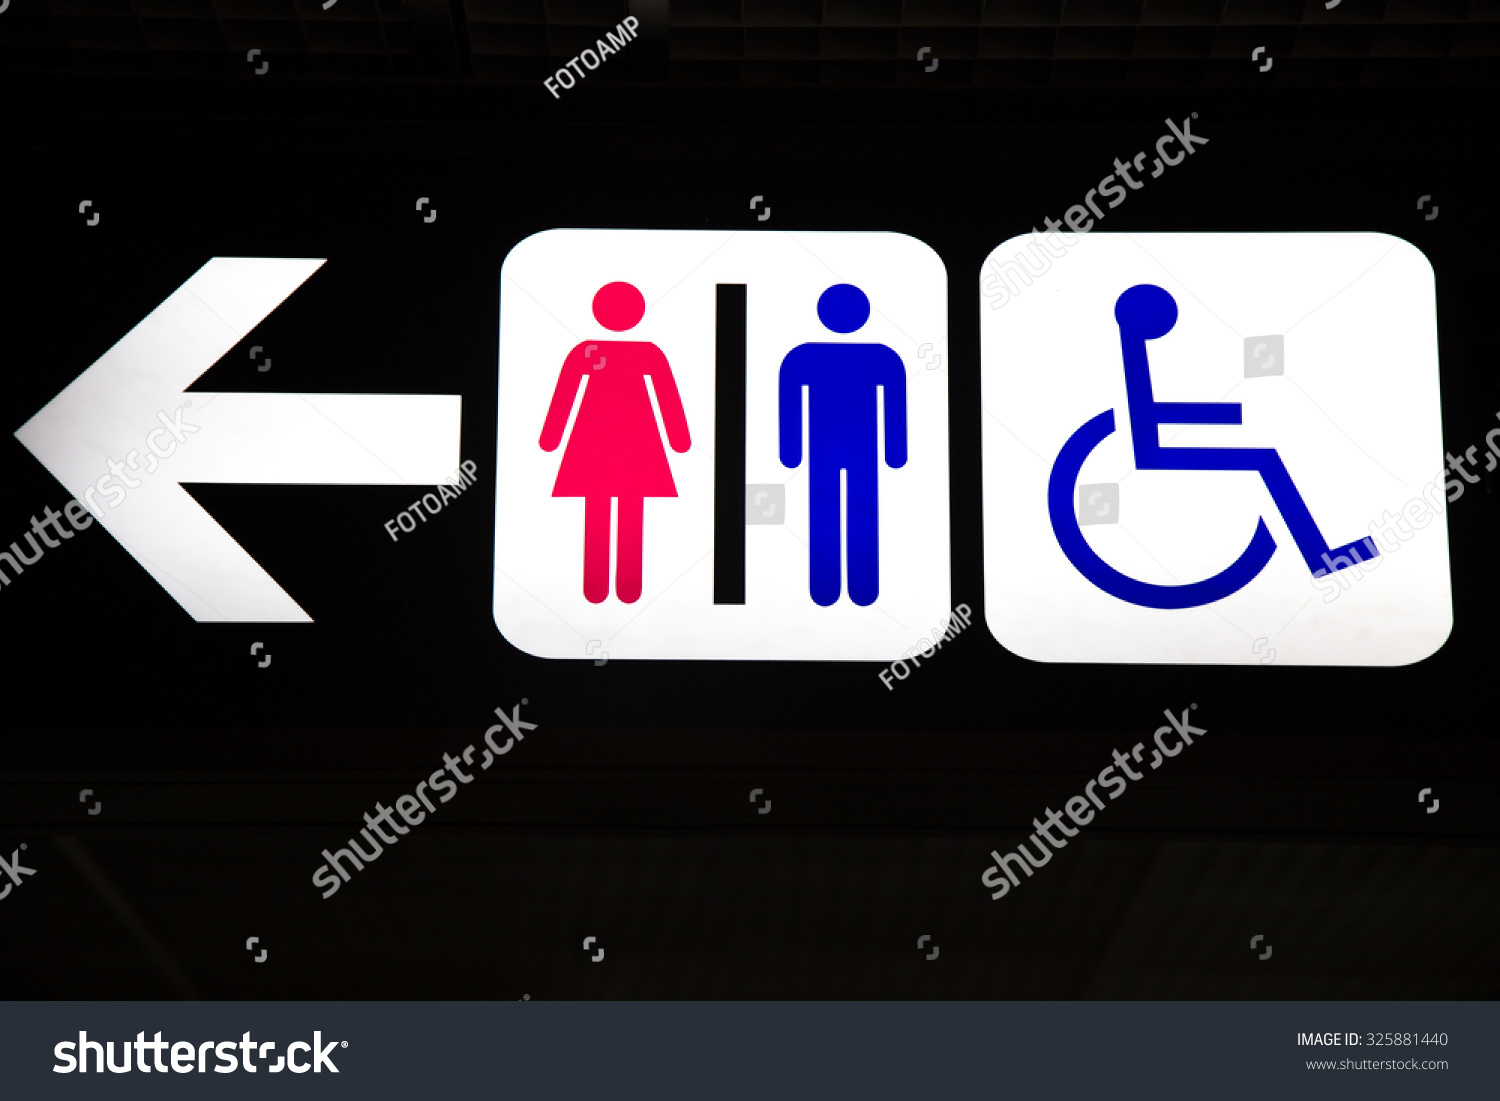 Restroom Male Female And Cripple Public Sing Bathroom Signs Sign Toilet Men Women With An Arrow Showing Direction Stock Photo